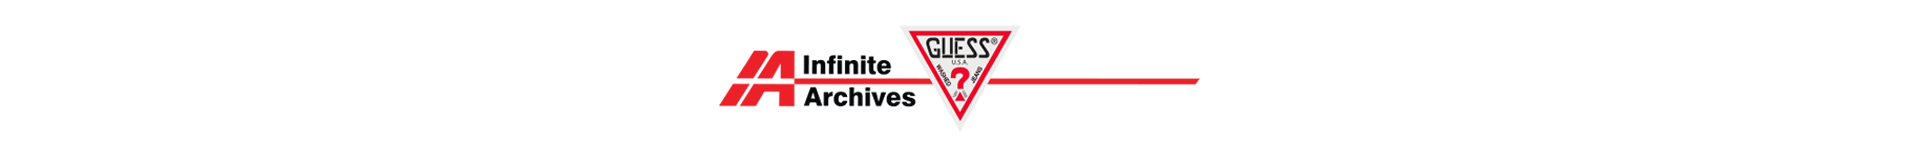 GUESS Jeans USA Infinite Archives